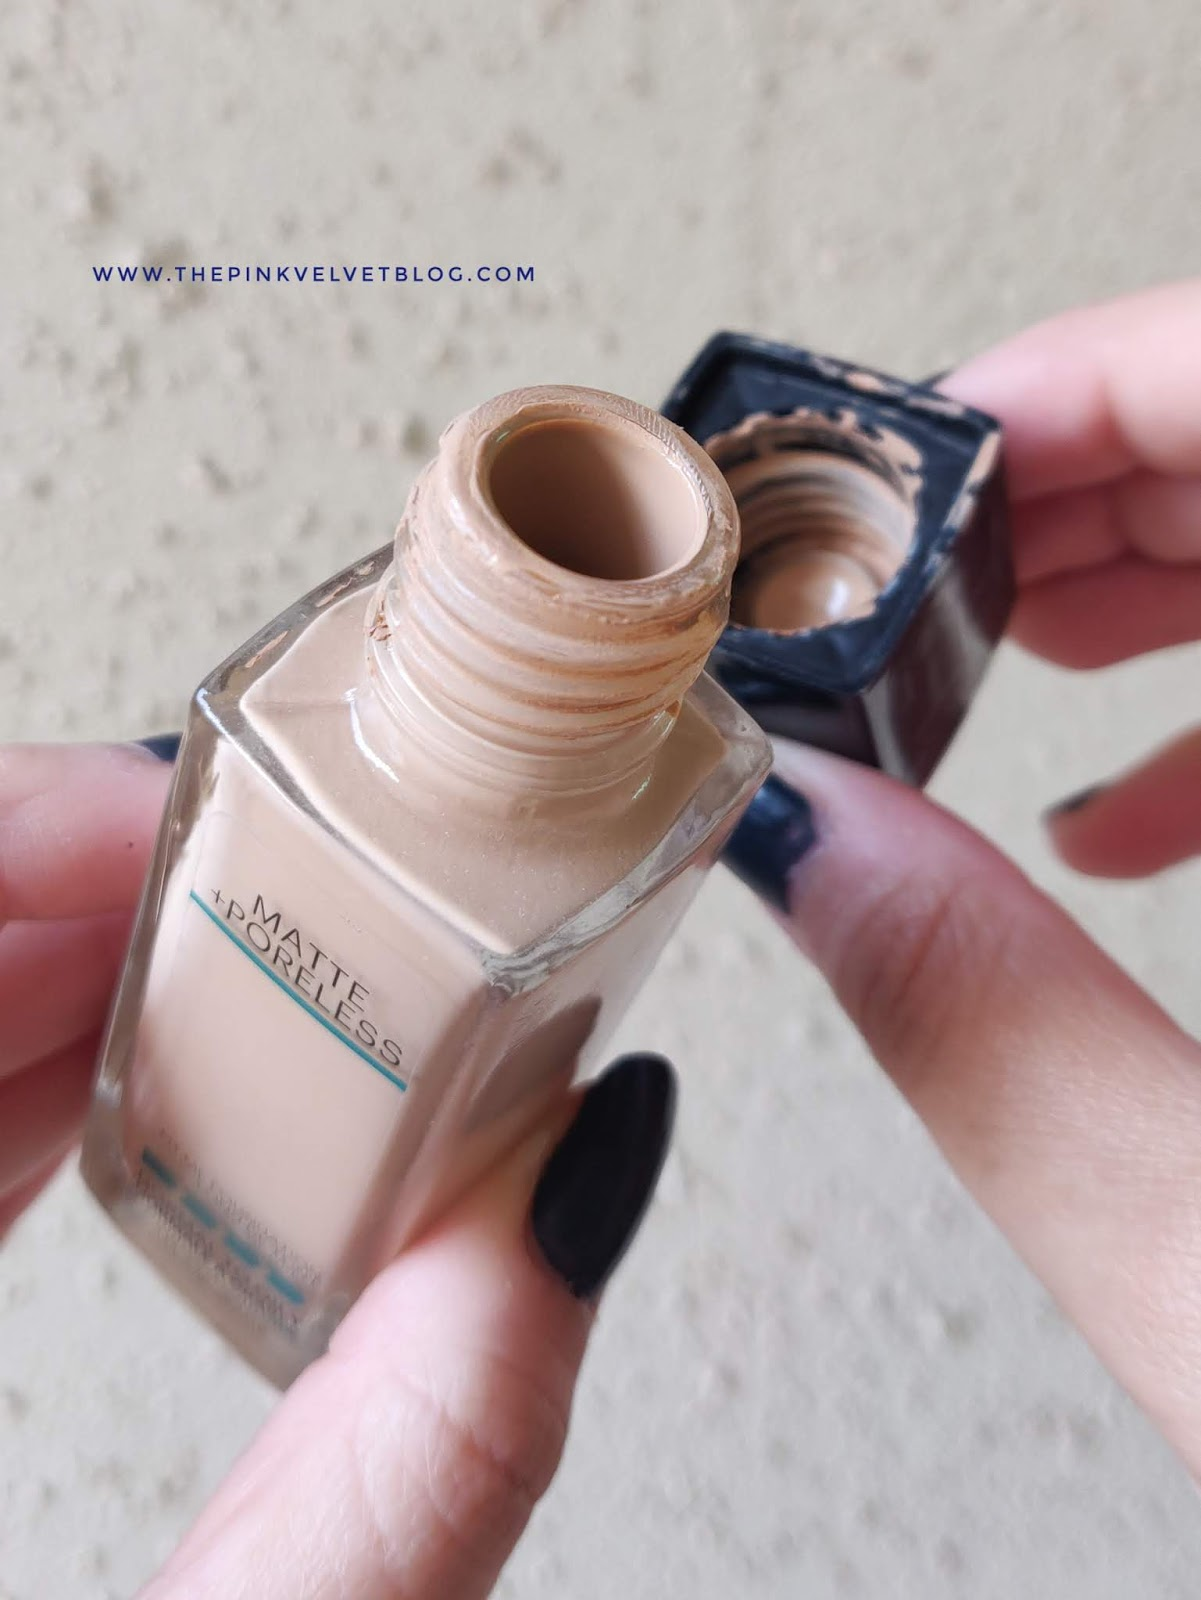 Maybelline Fit Me Foundation (120 Classic Ivory) - Review and Swatches